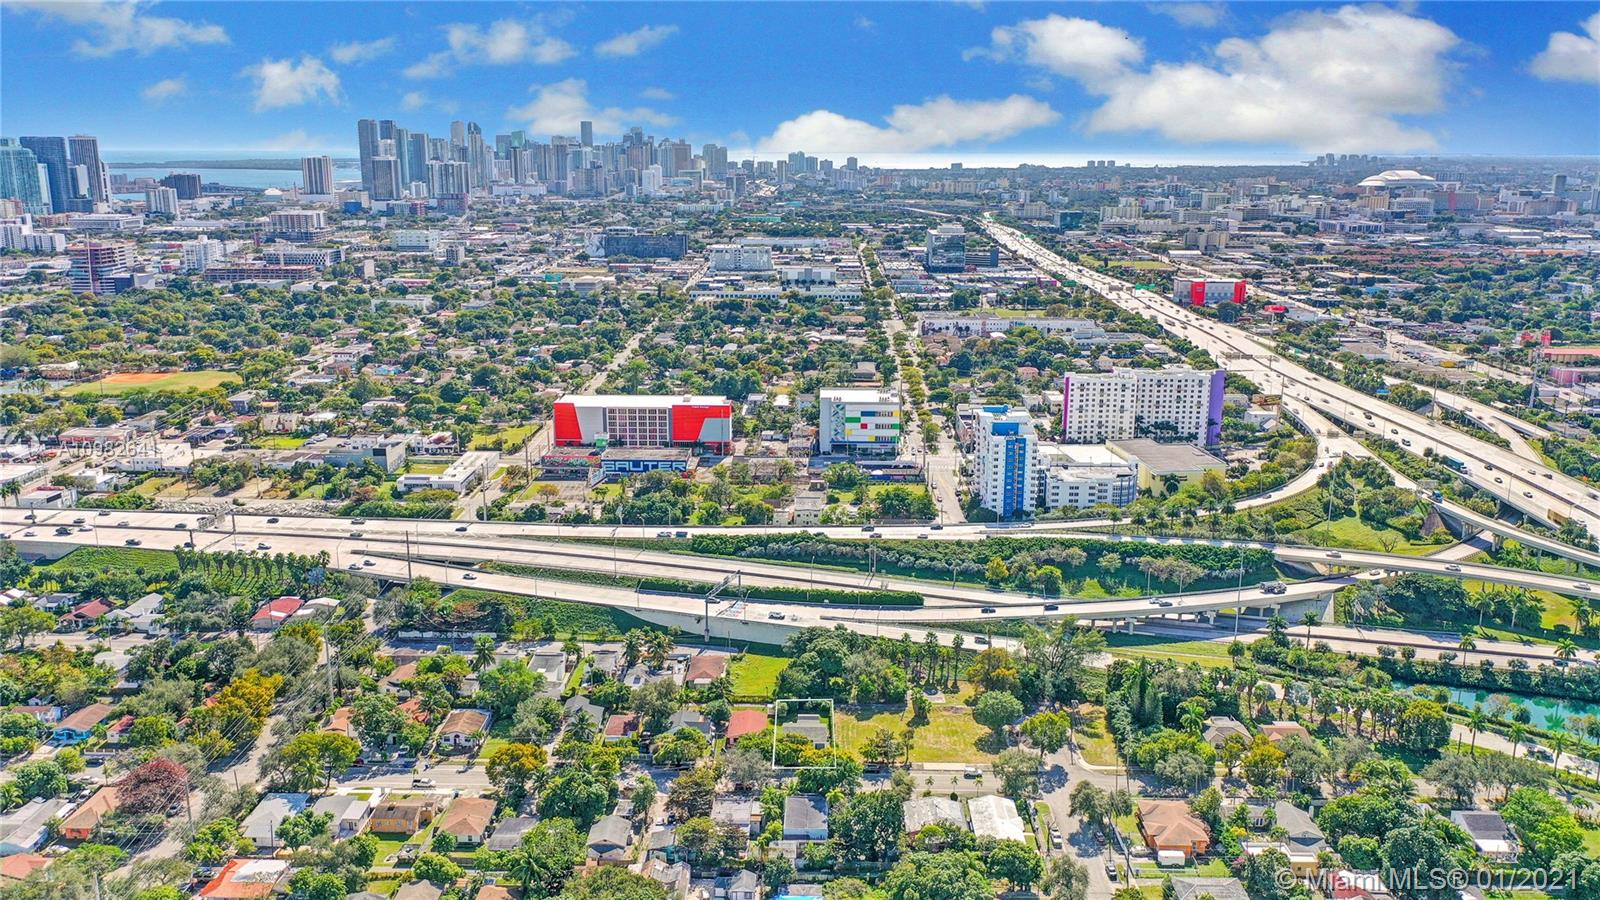 410 NW 40th St, Miami, Florida 33127, 2 Bedrooms Bedrooms, 1 Room Rooms,1 BathroomBathrooms,Residential,For Sale,410 NW 40th St,A10982641